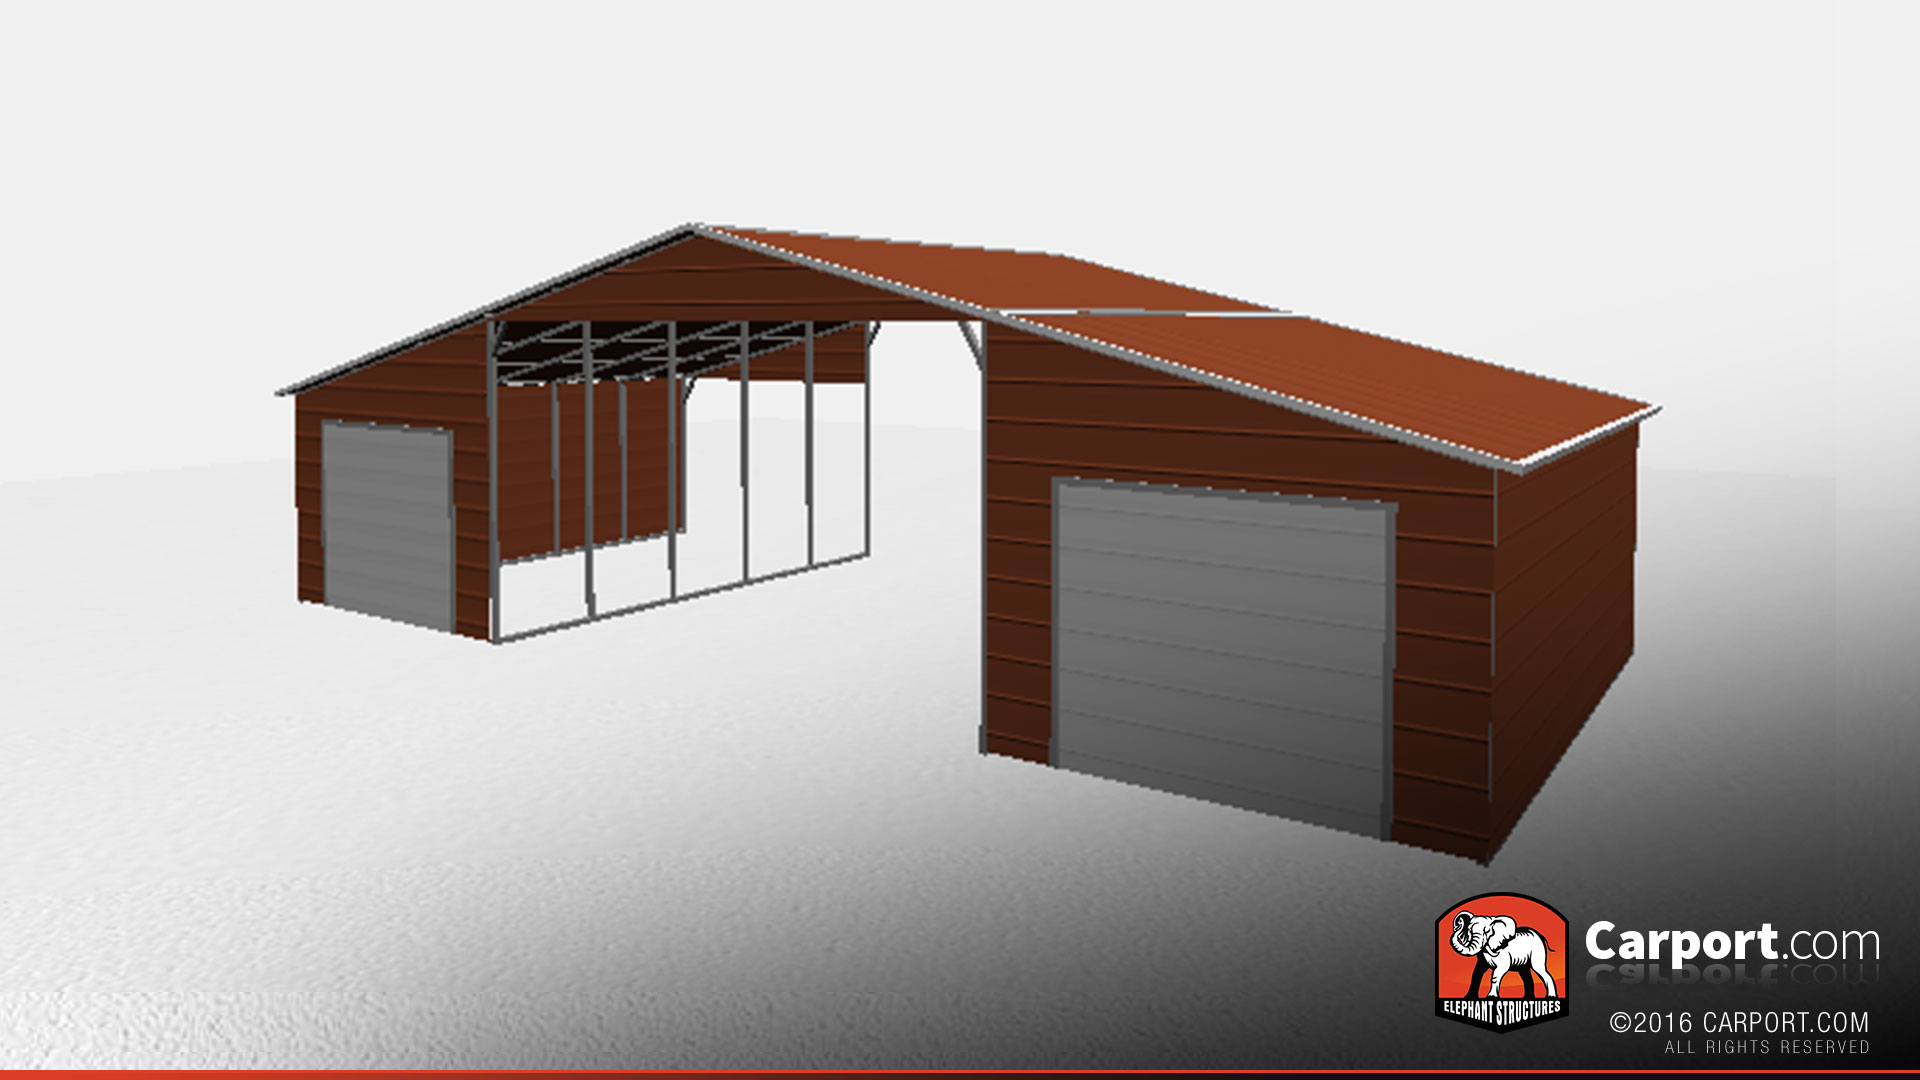 42 39 x 21 39 x 12 39 valley style metal barn shop metal Barn style buildings